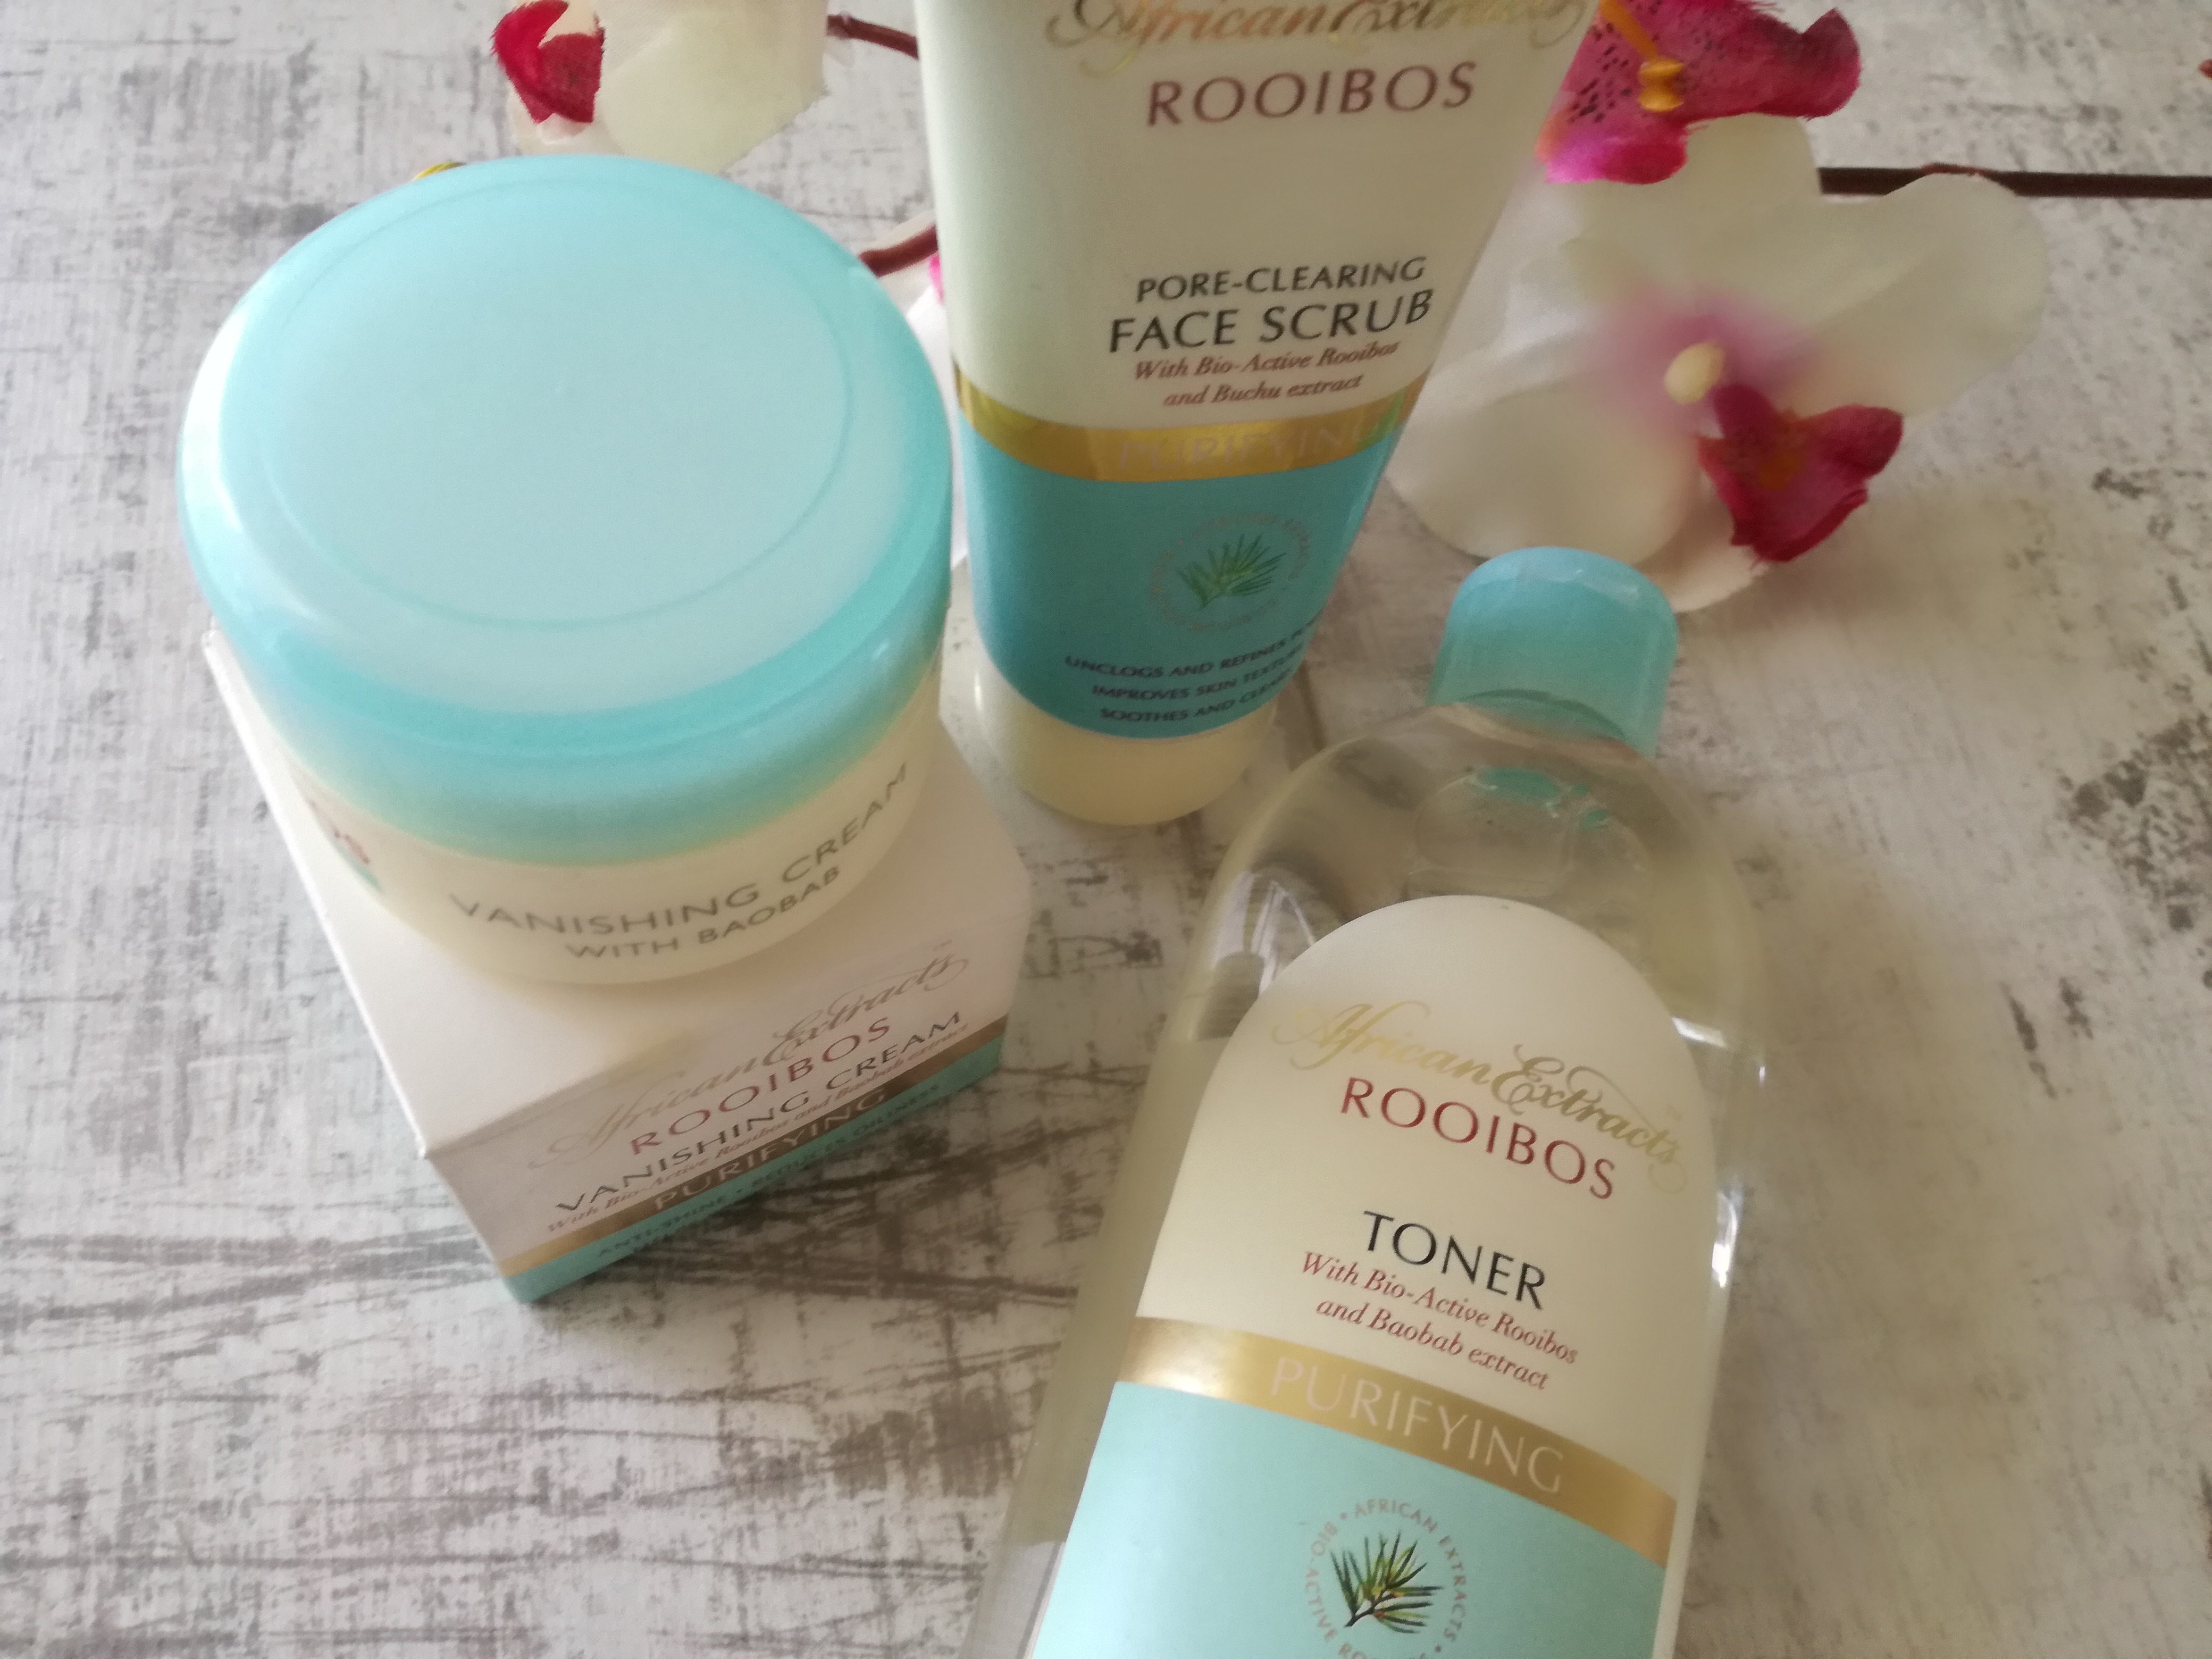 African Extracts Rooibos Range